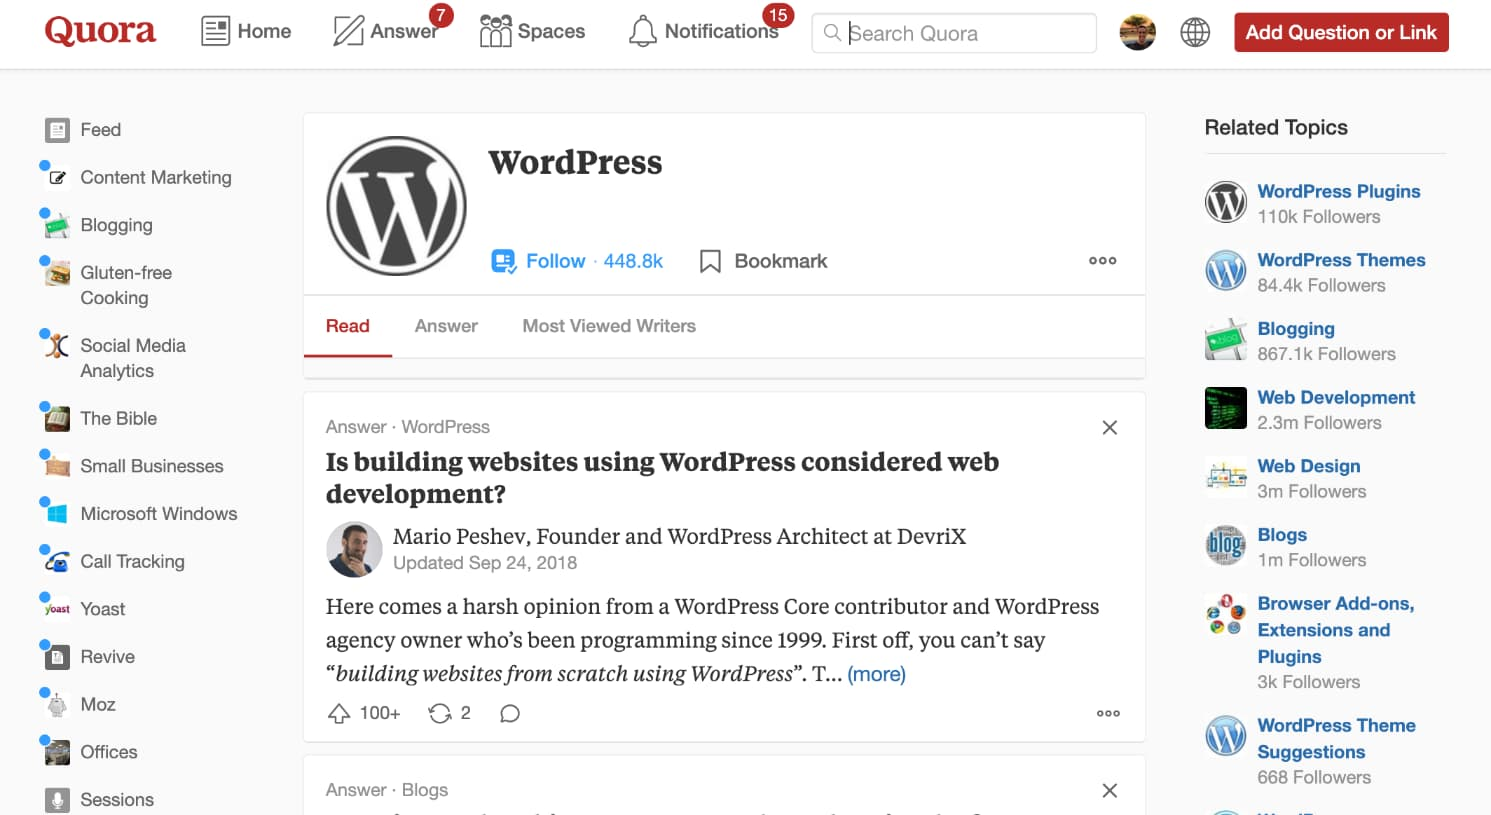 WordPress support on Quora